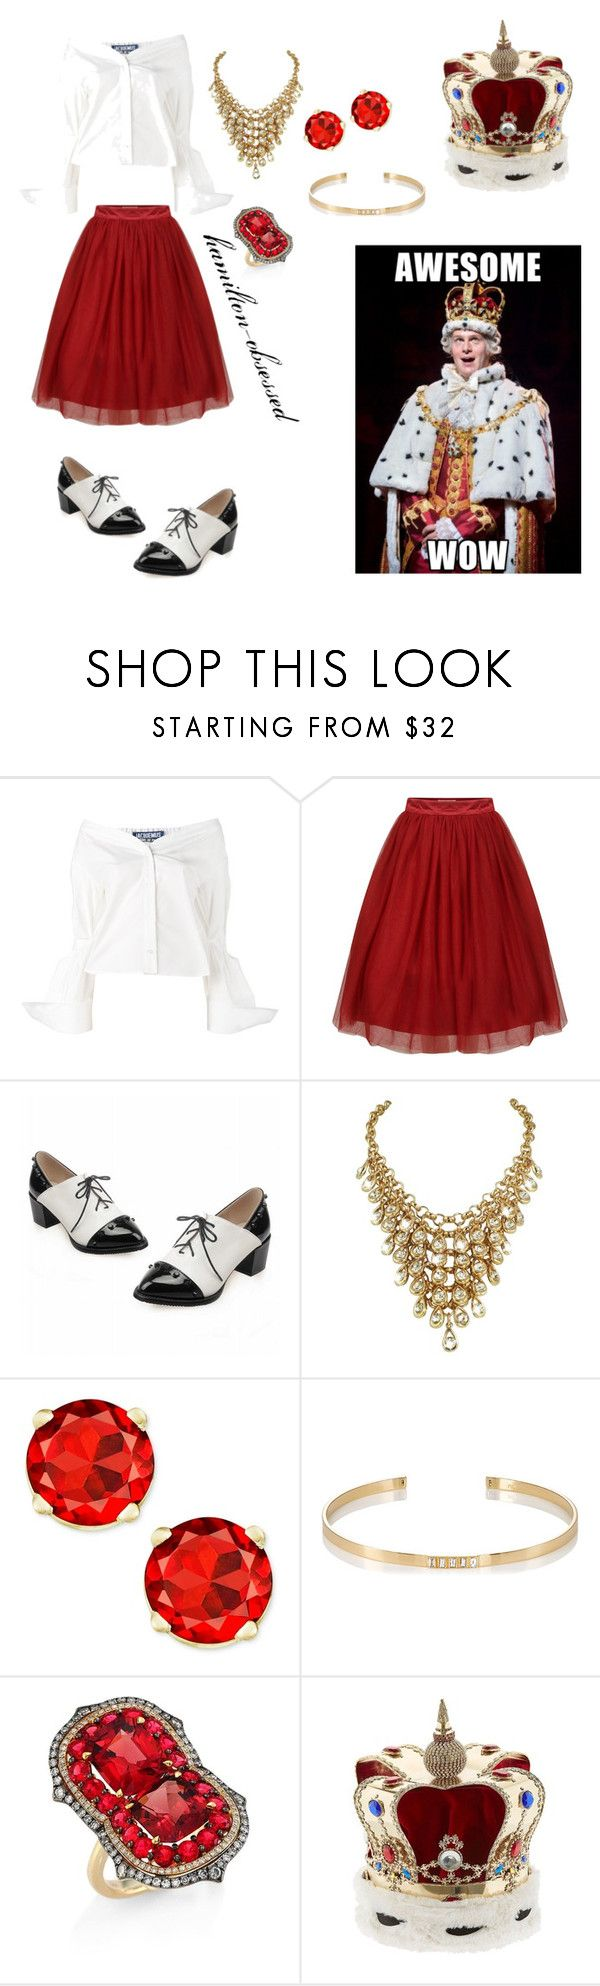 """King George(Hamilton)"" by hamilton-obsessed ❤ liked on Polyvore featuring Jacquemus, Ileana Makri, Ivy and Vittorio Ceccoli"